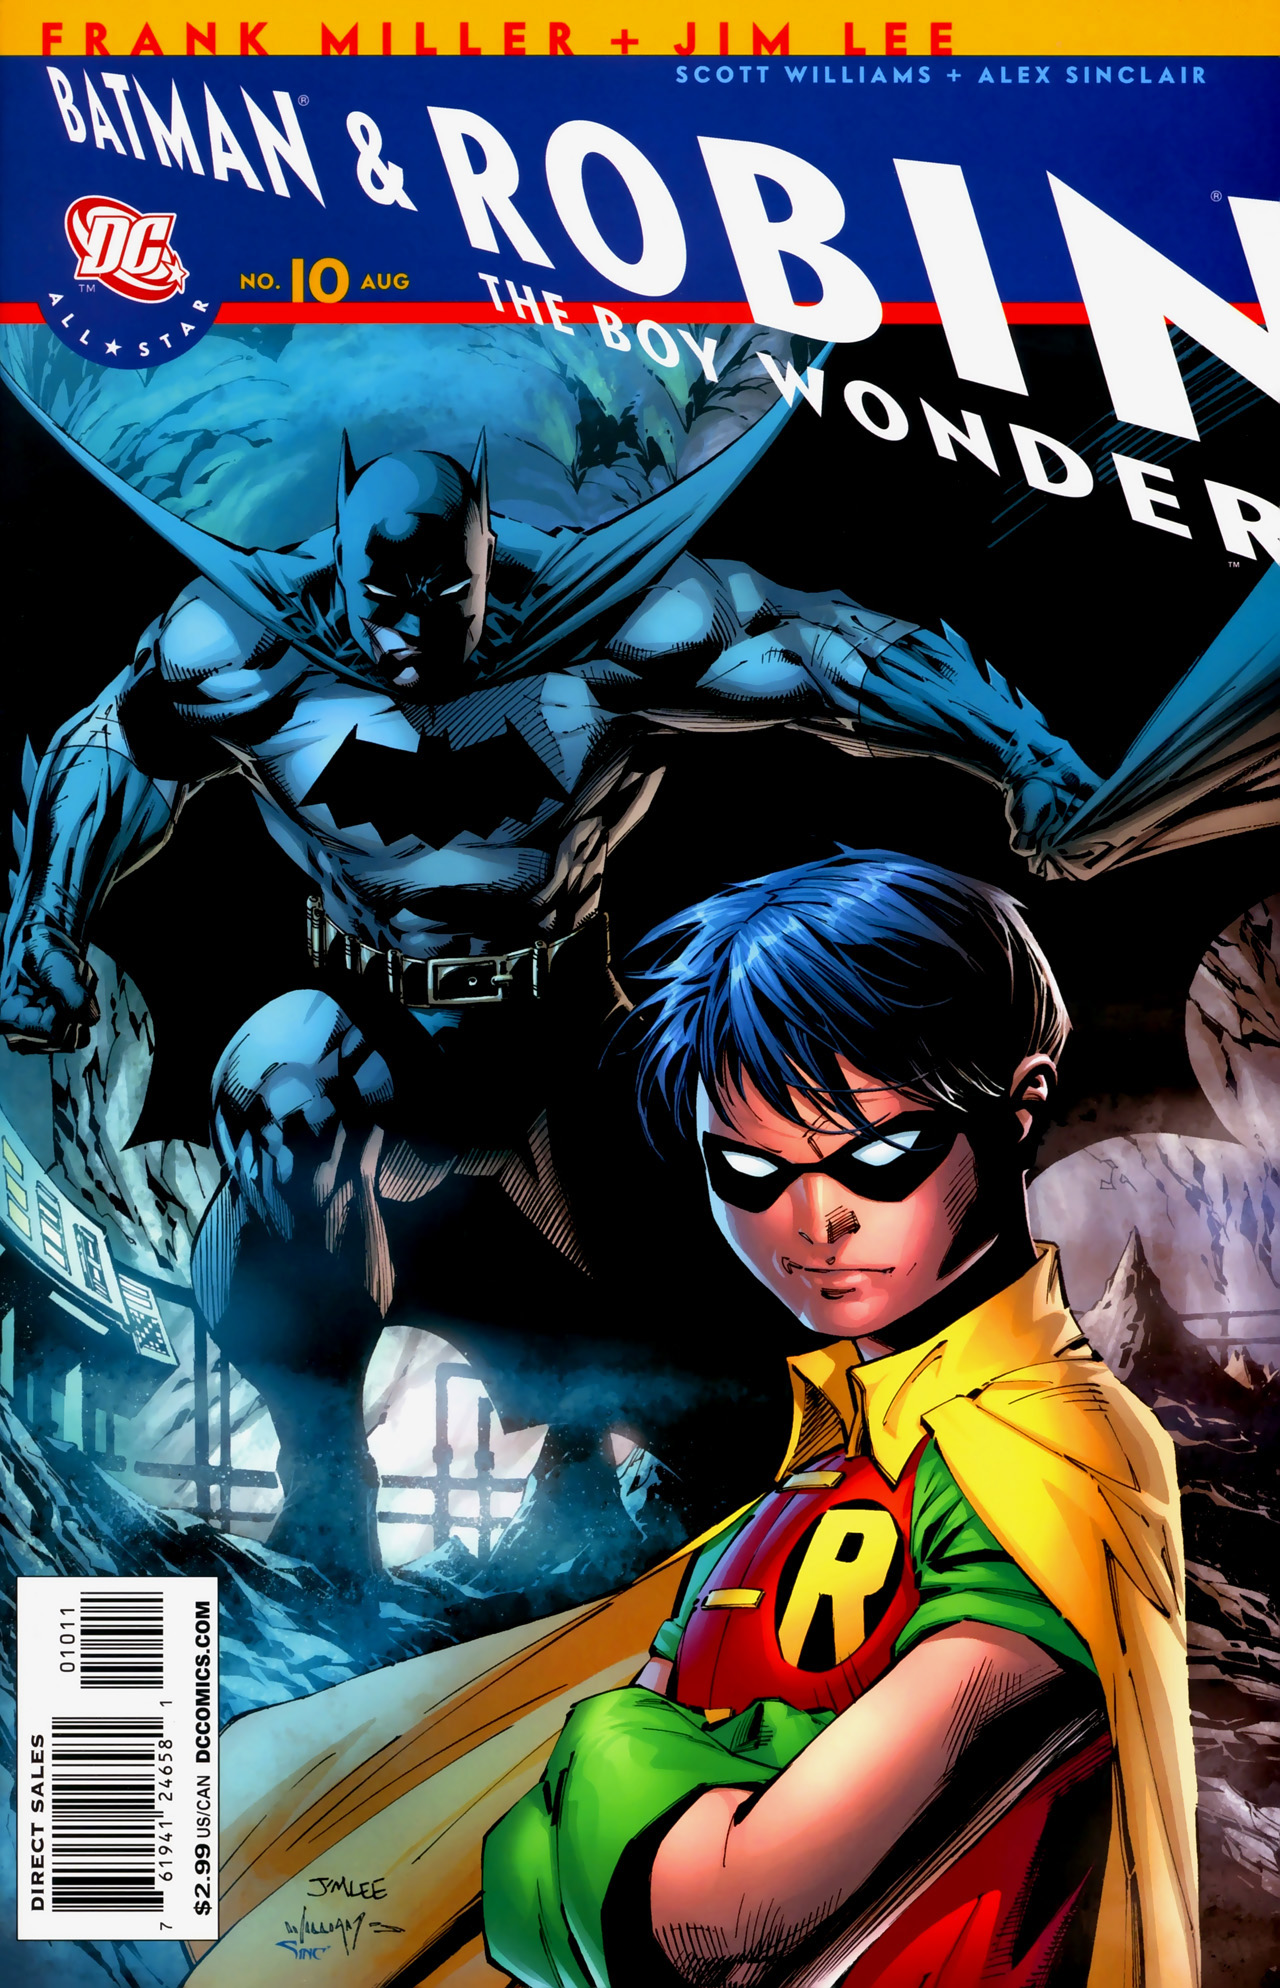 All Star Batman and Robin, the Boy Wonder Vol 1 10